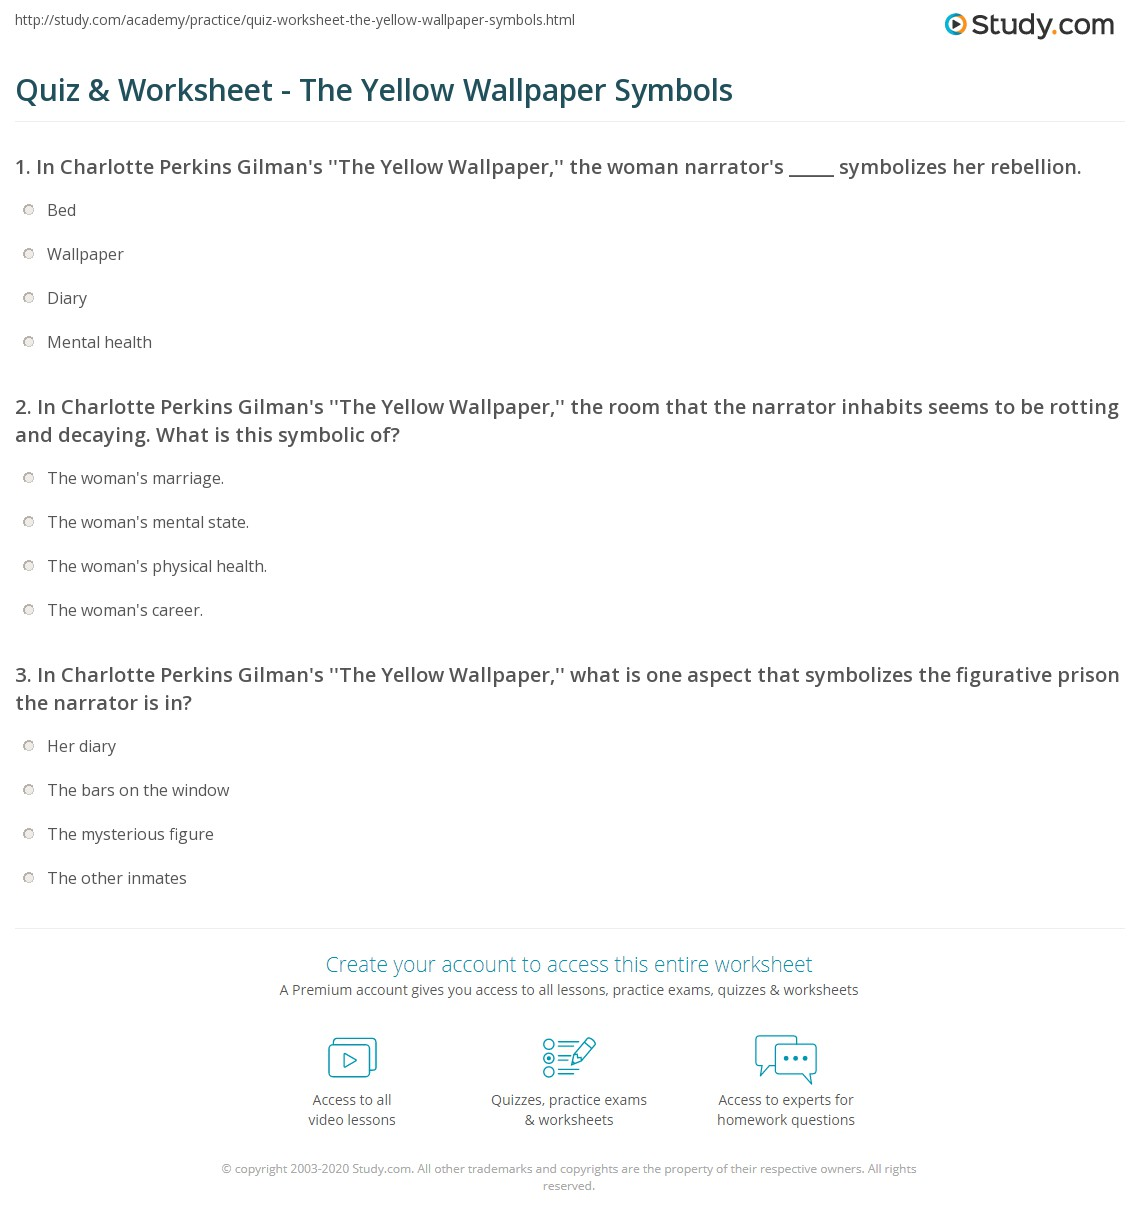 Print The Yellow Wallpaper Symbolism Worksheet